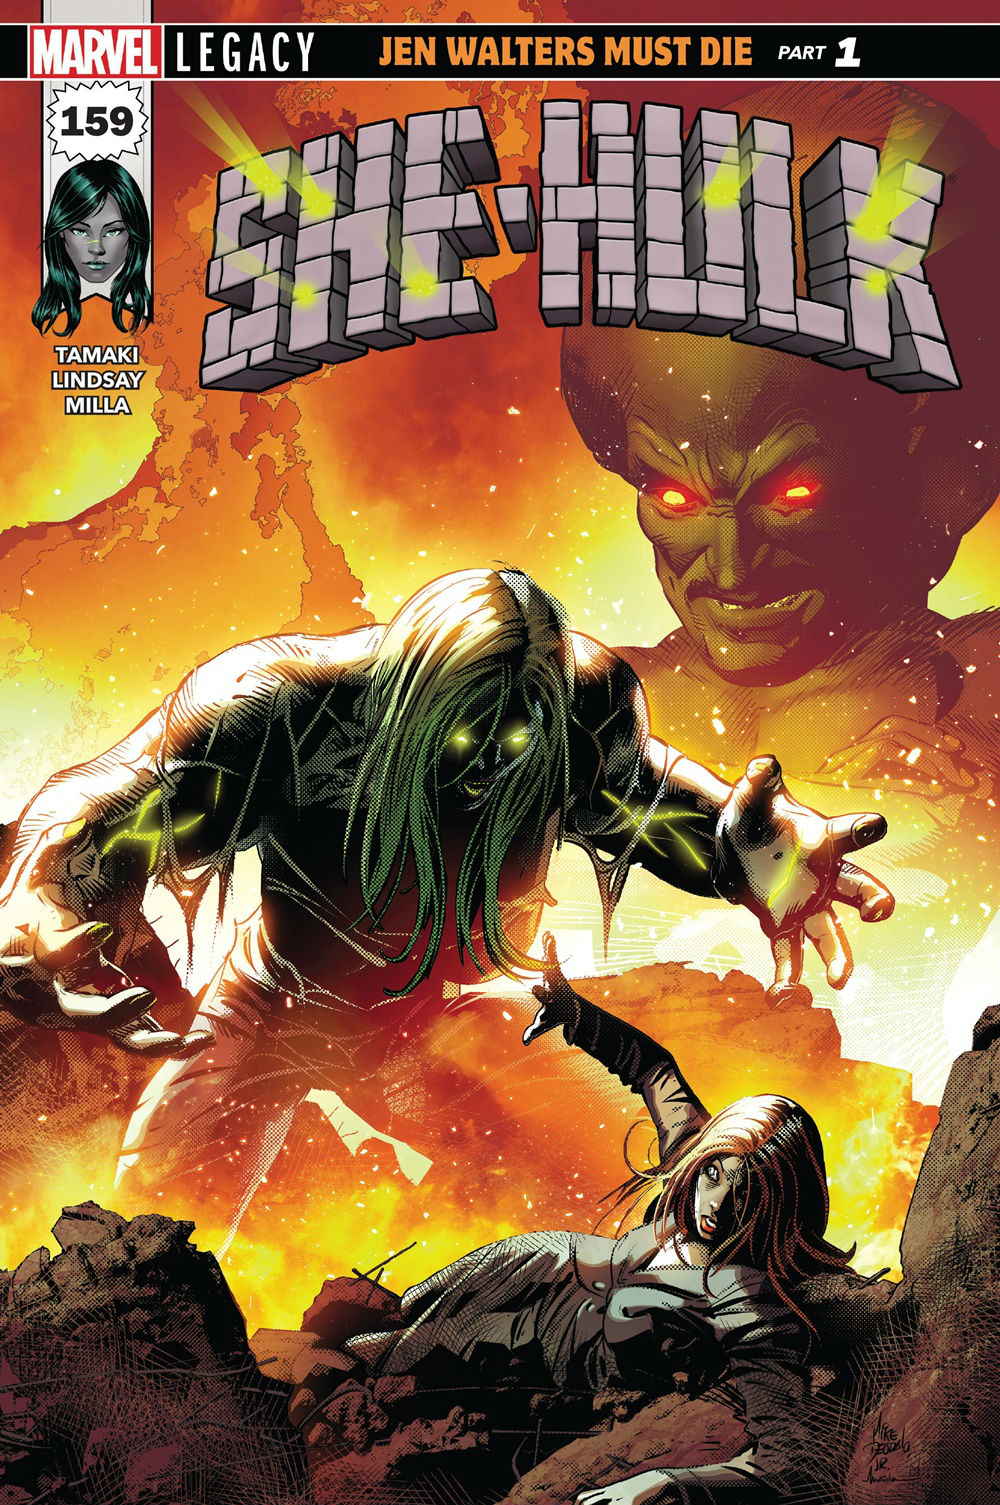 Frustrating name change aside, 'She-Hulk' furthers the top